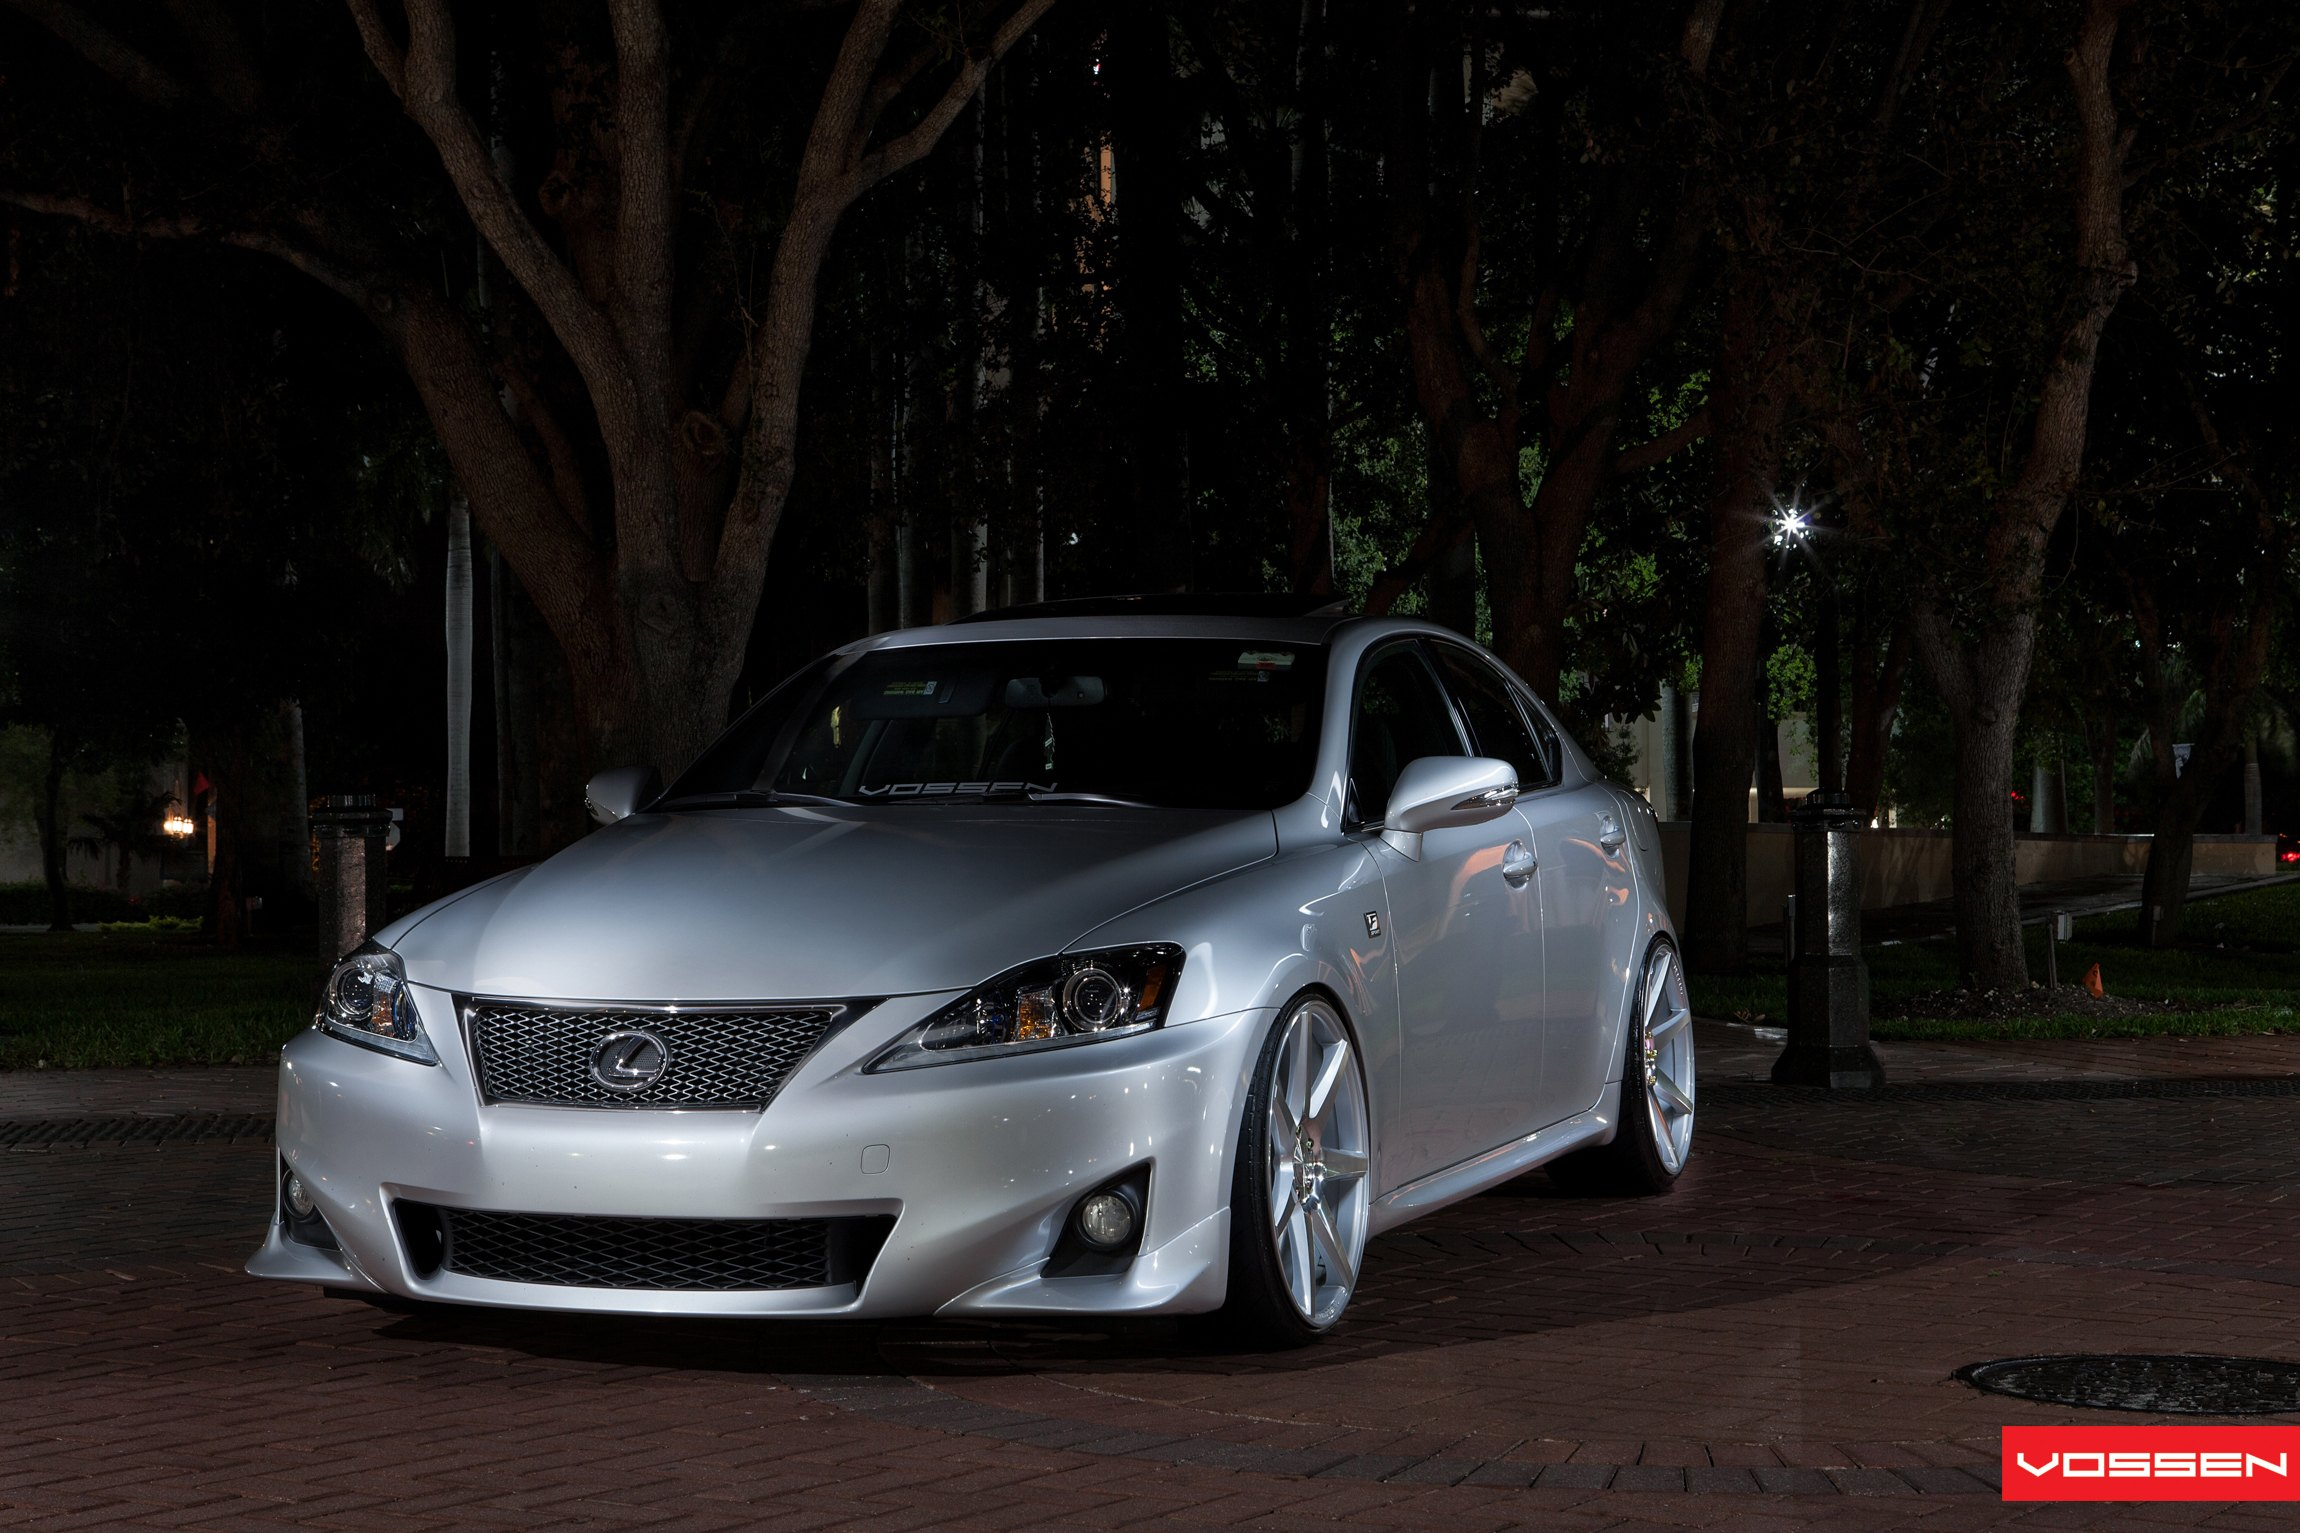 Silver Stanced Lexus Is With Custom Chrome Grille Photo By Vossen